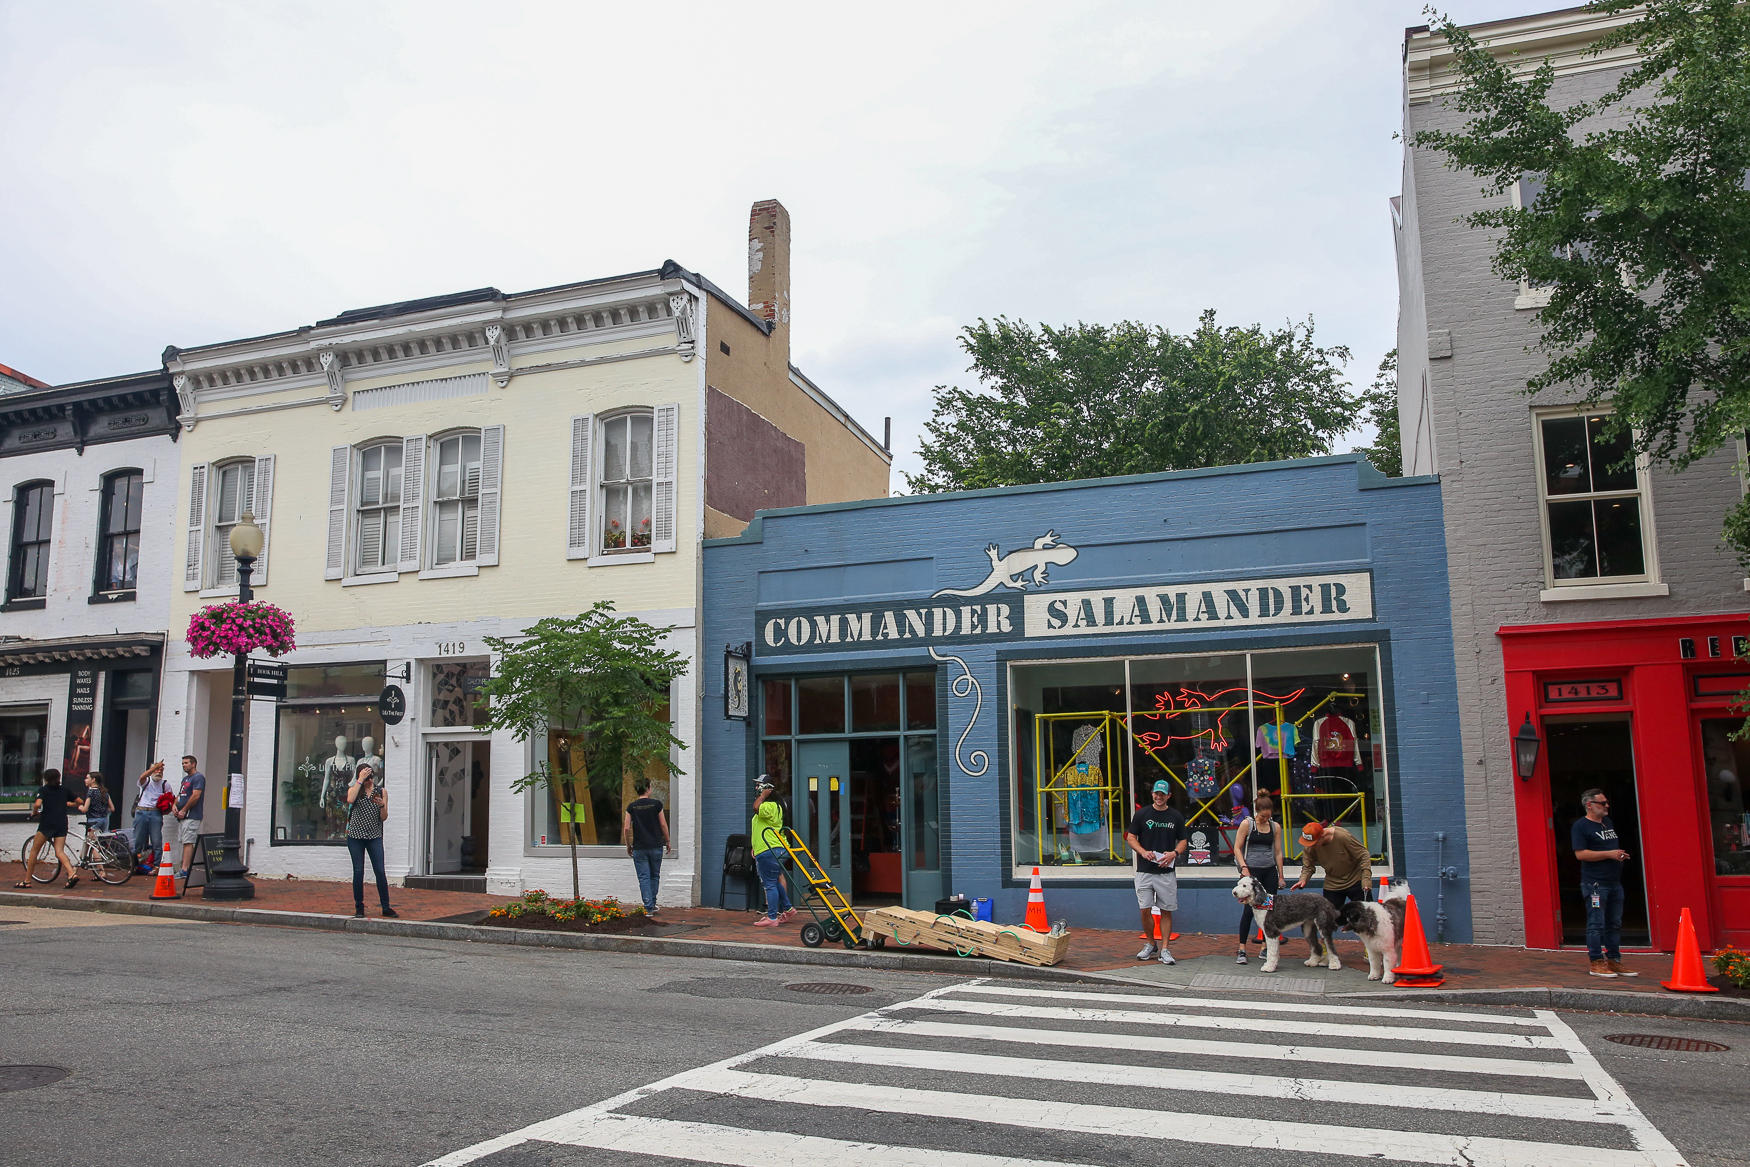 In an ironic twist of fate, Commander Salamander's former co-owner, Wendy Ezrailson, now owns the store next to the new replica of Commander Salamander, REDDzTrading. (Image: Amanda Andrade-Rhoades/ DC Refined)